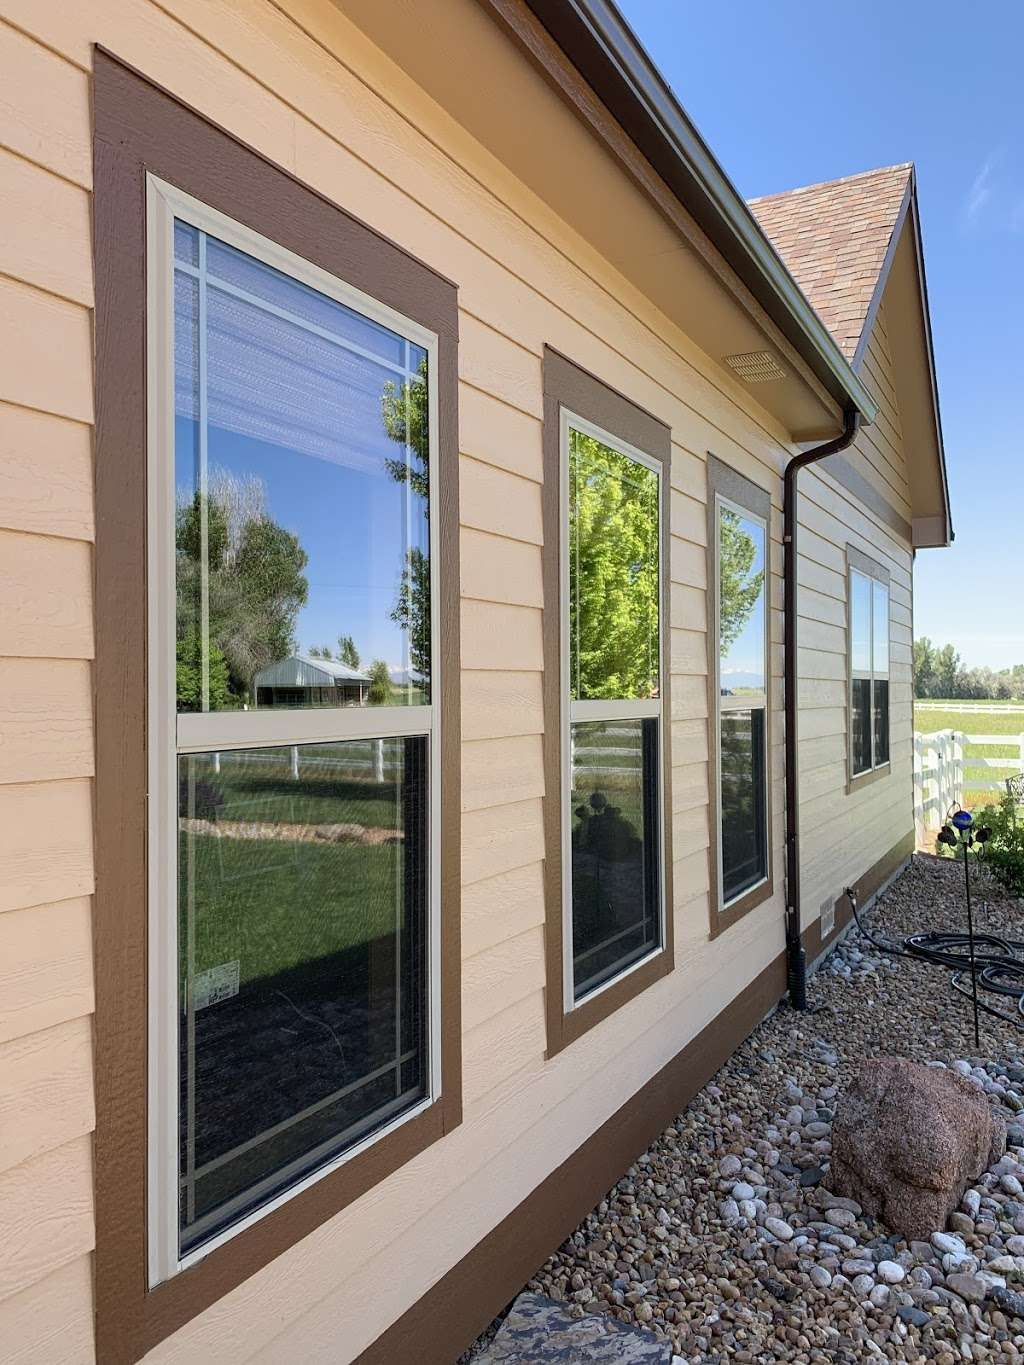 United Window Cleaning - store  | Photo 3 of 8 | Address: 1121 Crescent Dr, Windsor, CO 80550, USA | Phone: (970) 430-0548